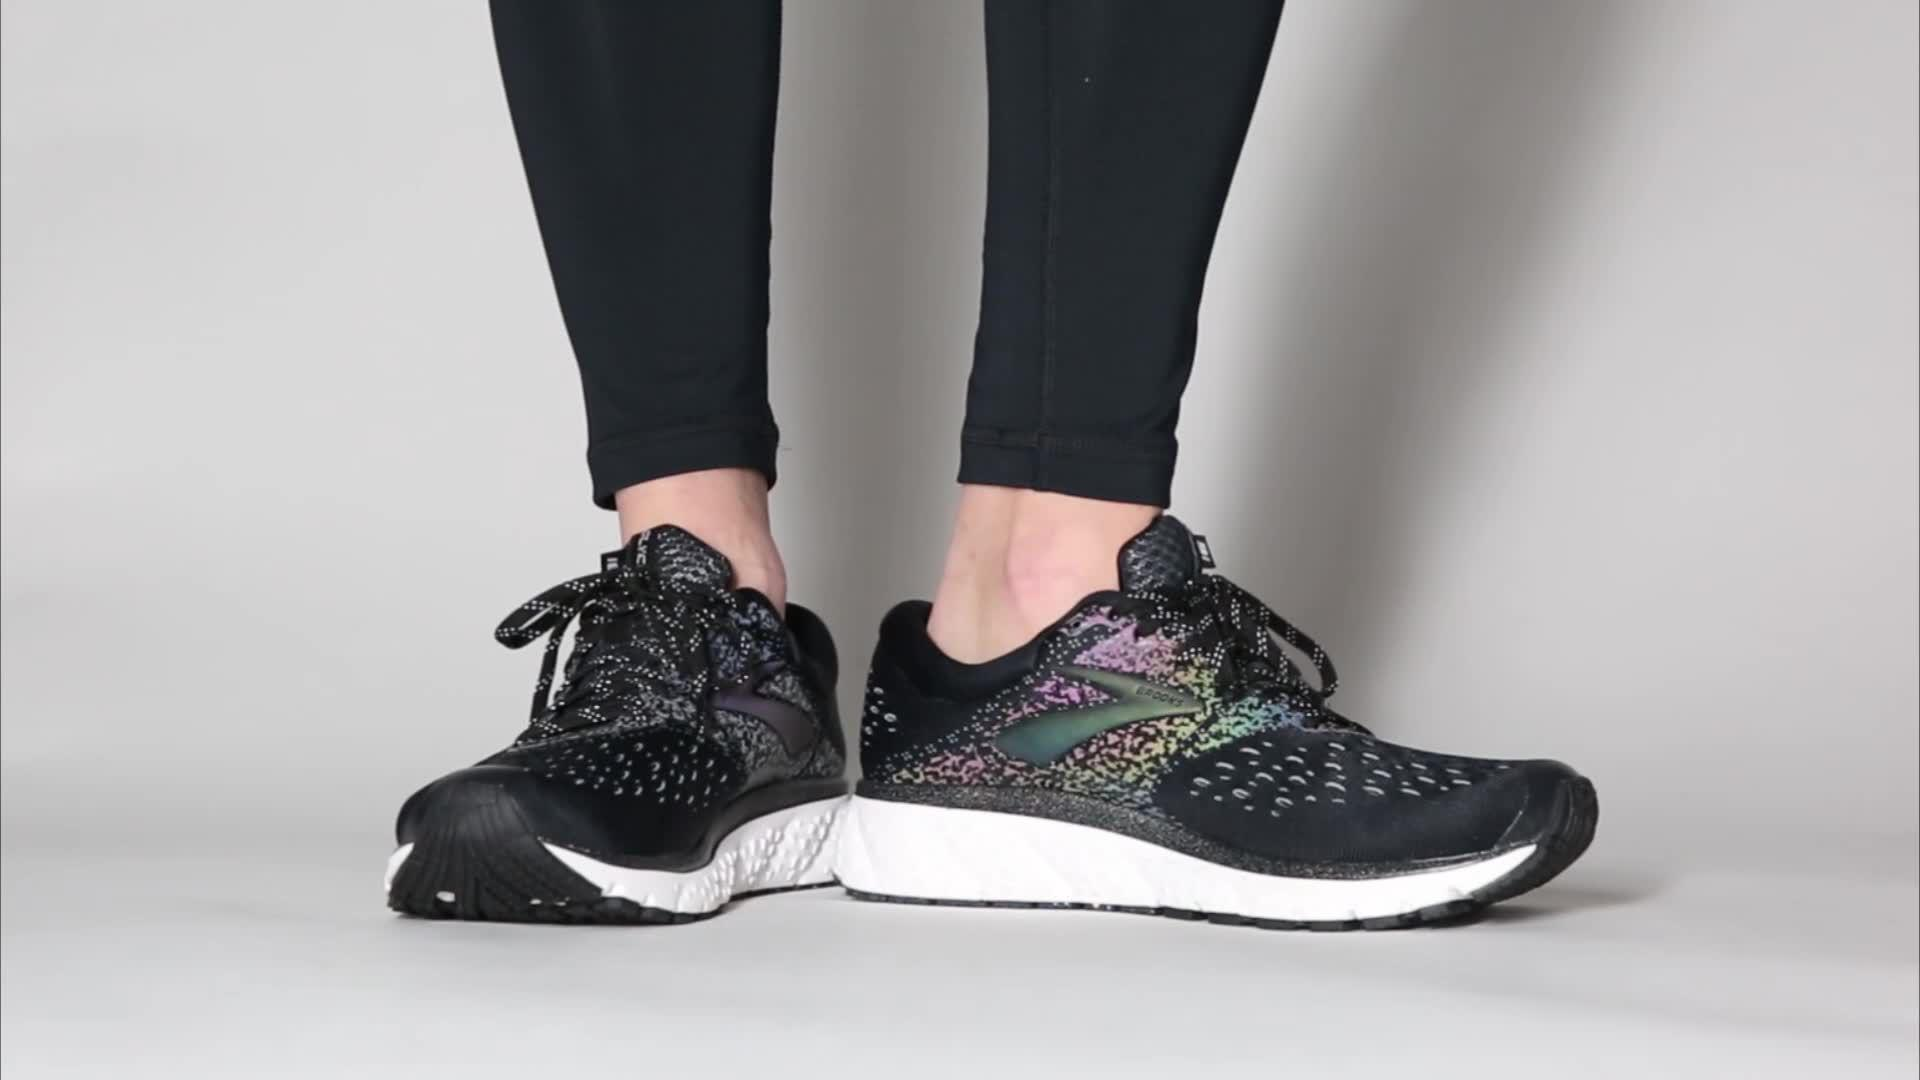 673b9cd1285 Lyst - Brooks Glycerin 16 Reflective Running Shoes in Black